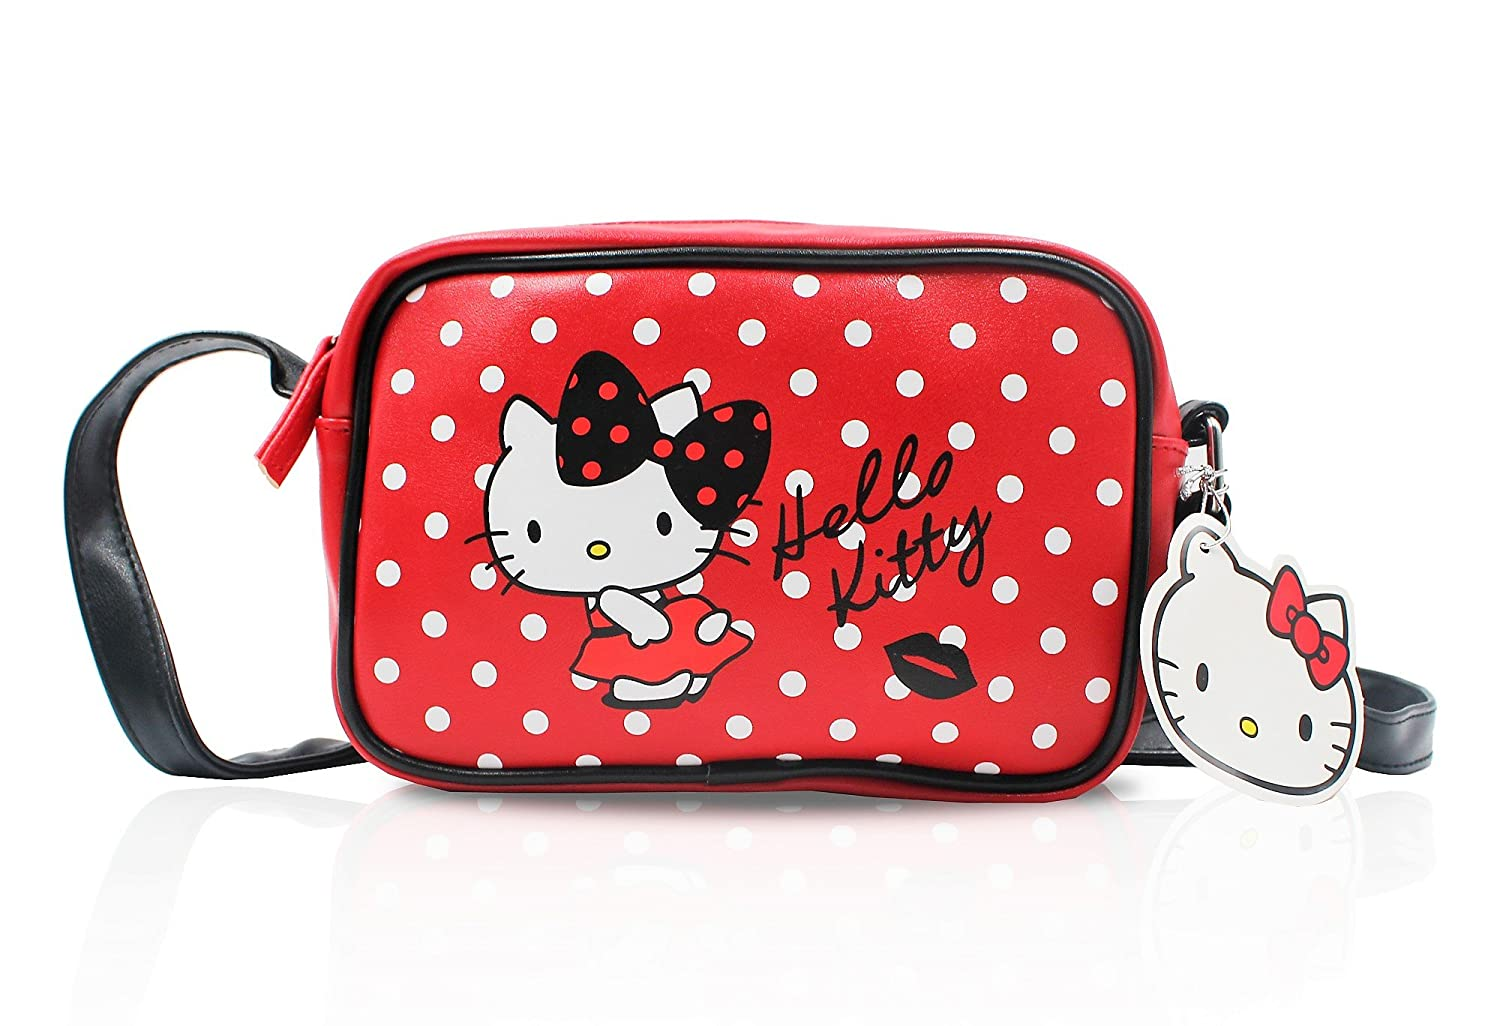 Finex One Medium Size Hello Kitty Red and White Polka Dot Crossbody Handbag Rectangular Bag